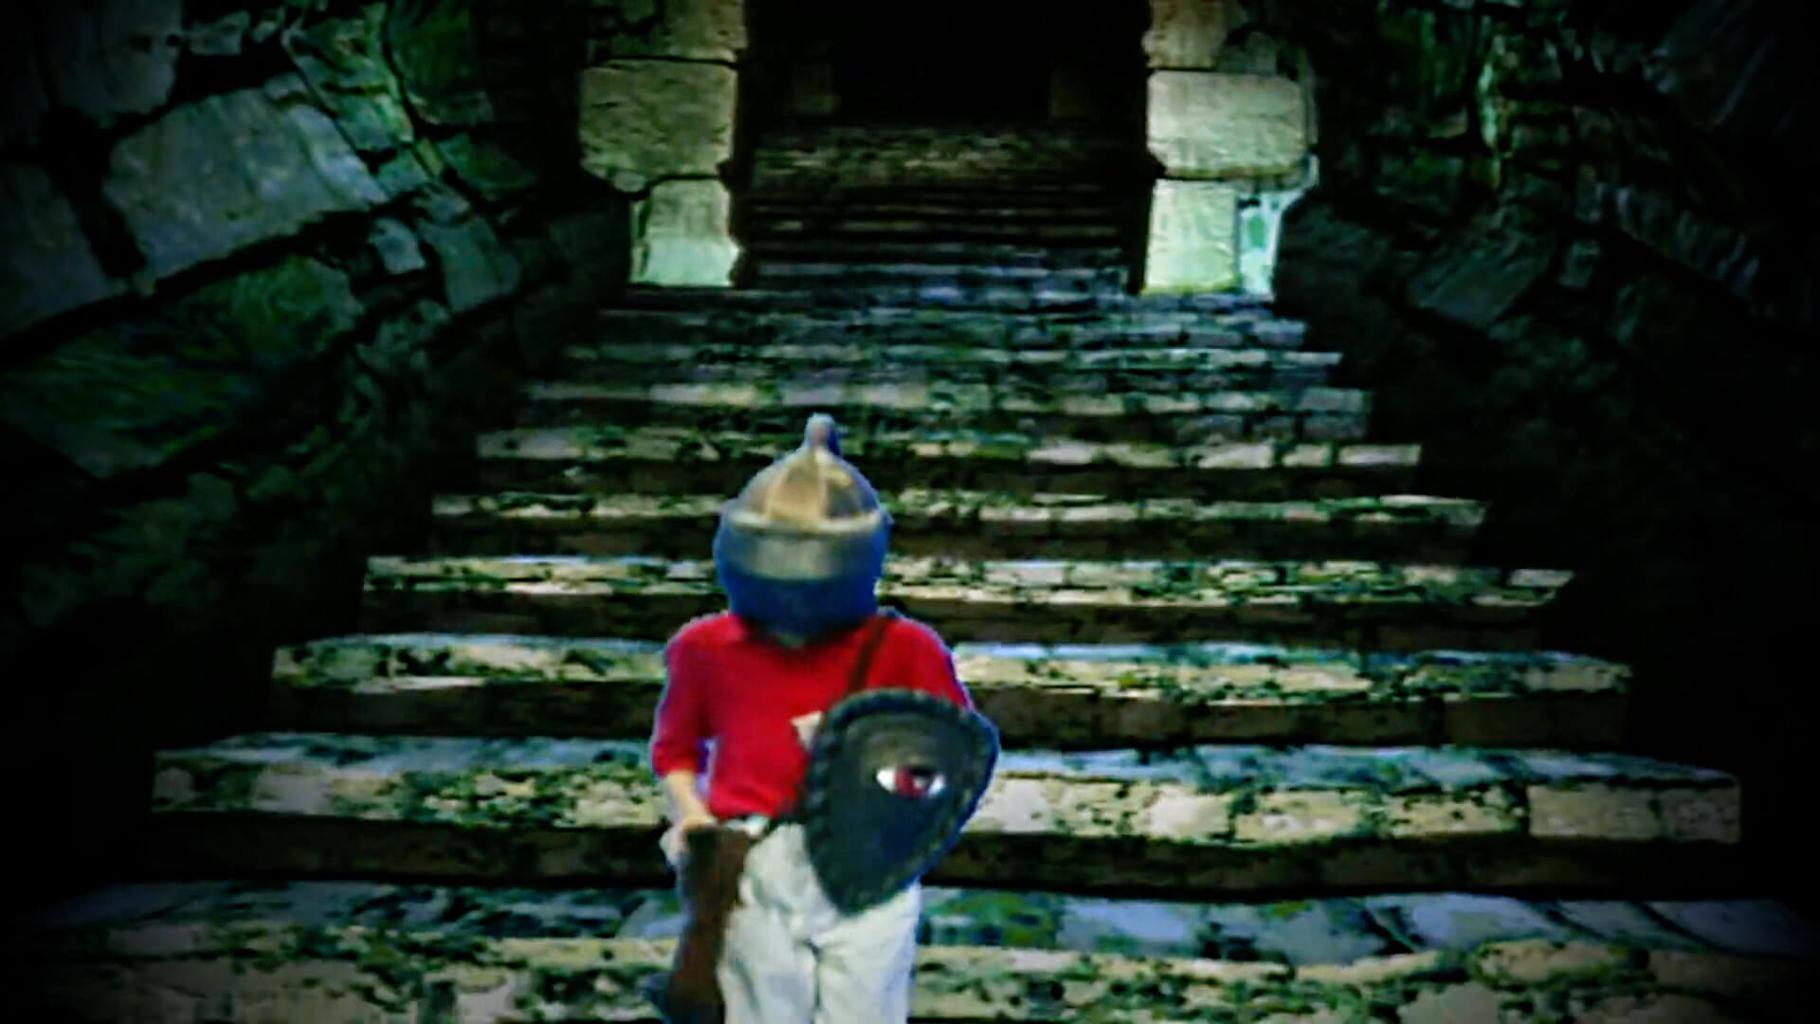 Dungeoneer walks down stairs into Level 3 in Series 8 of Knightmare (1994).